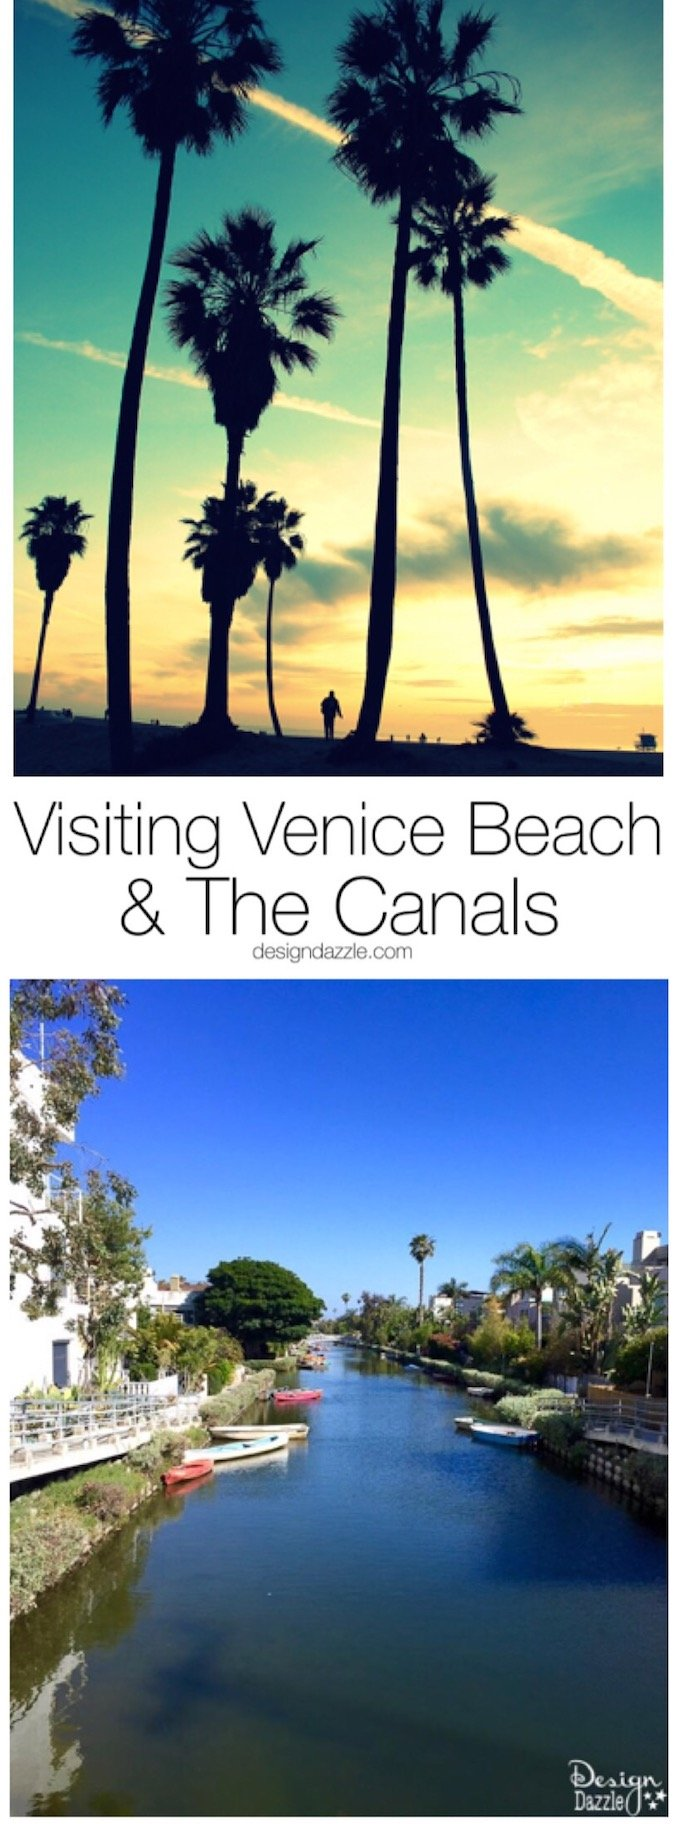 Ever been to Venice? How about Venice Beach? They're very different, but both have water ways to explore. Check out my weekend there on DesignDazzle!